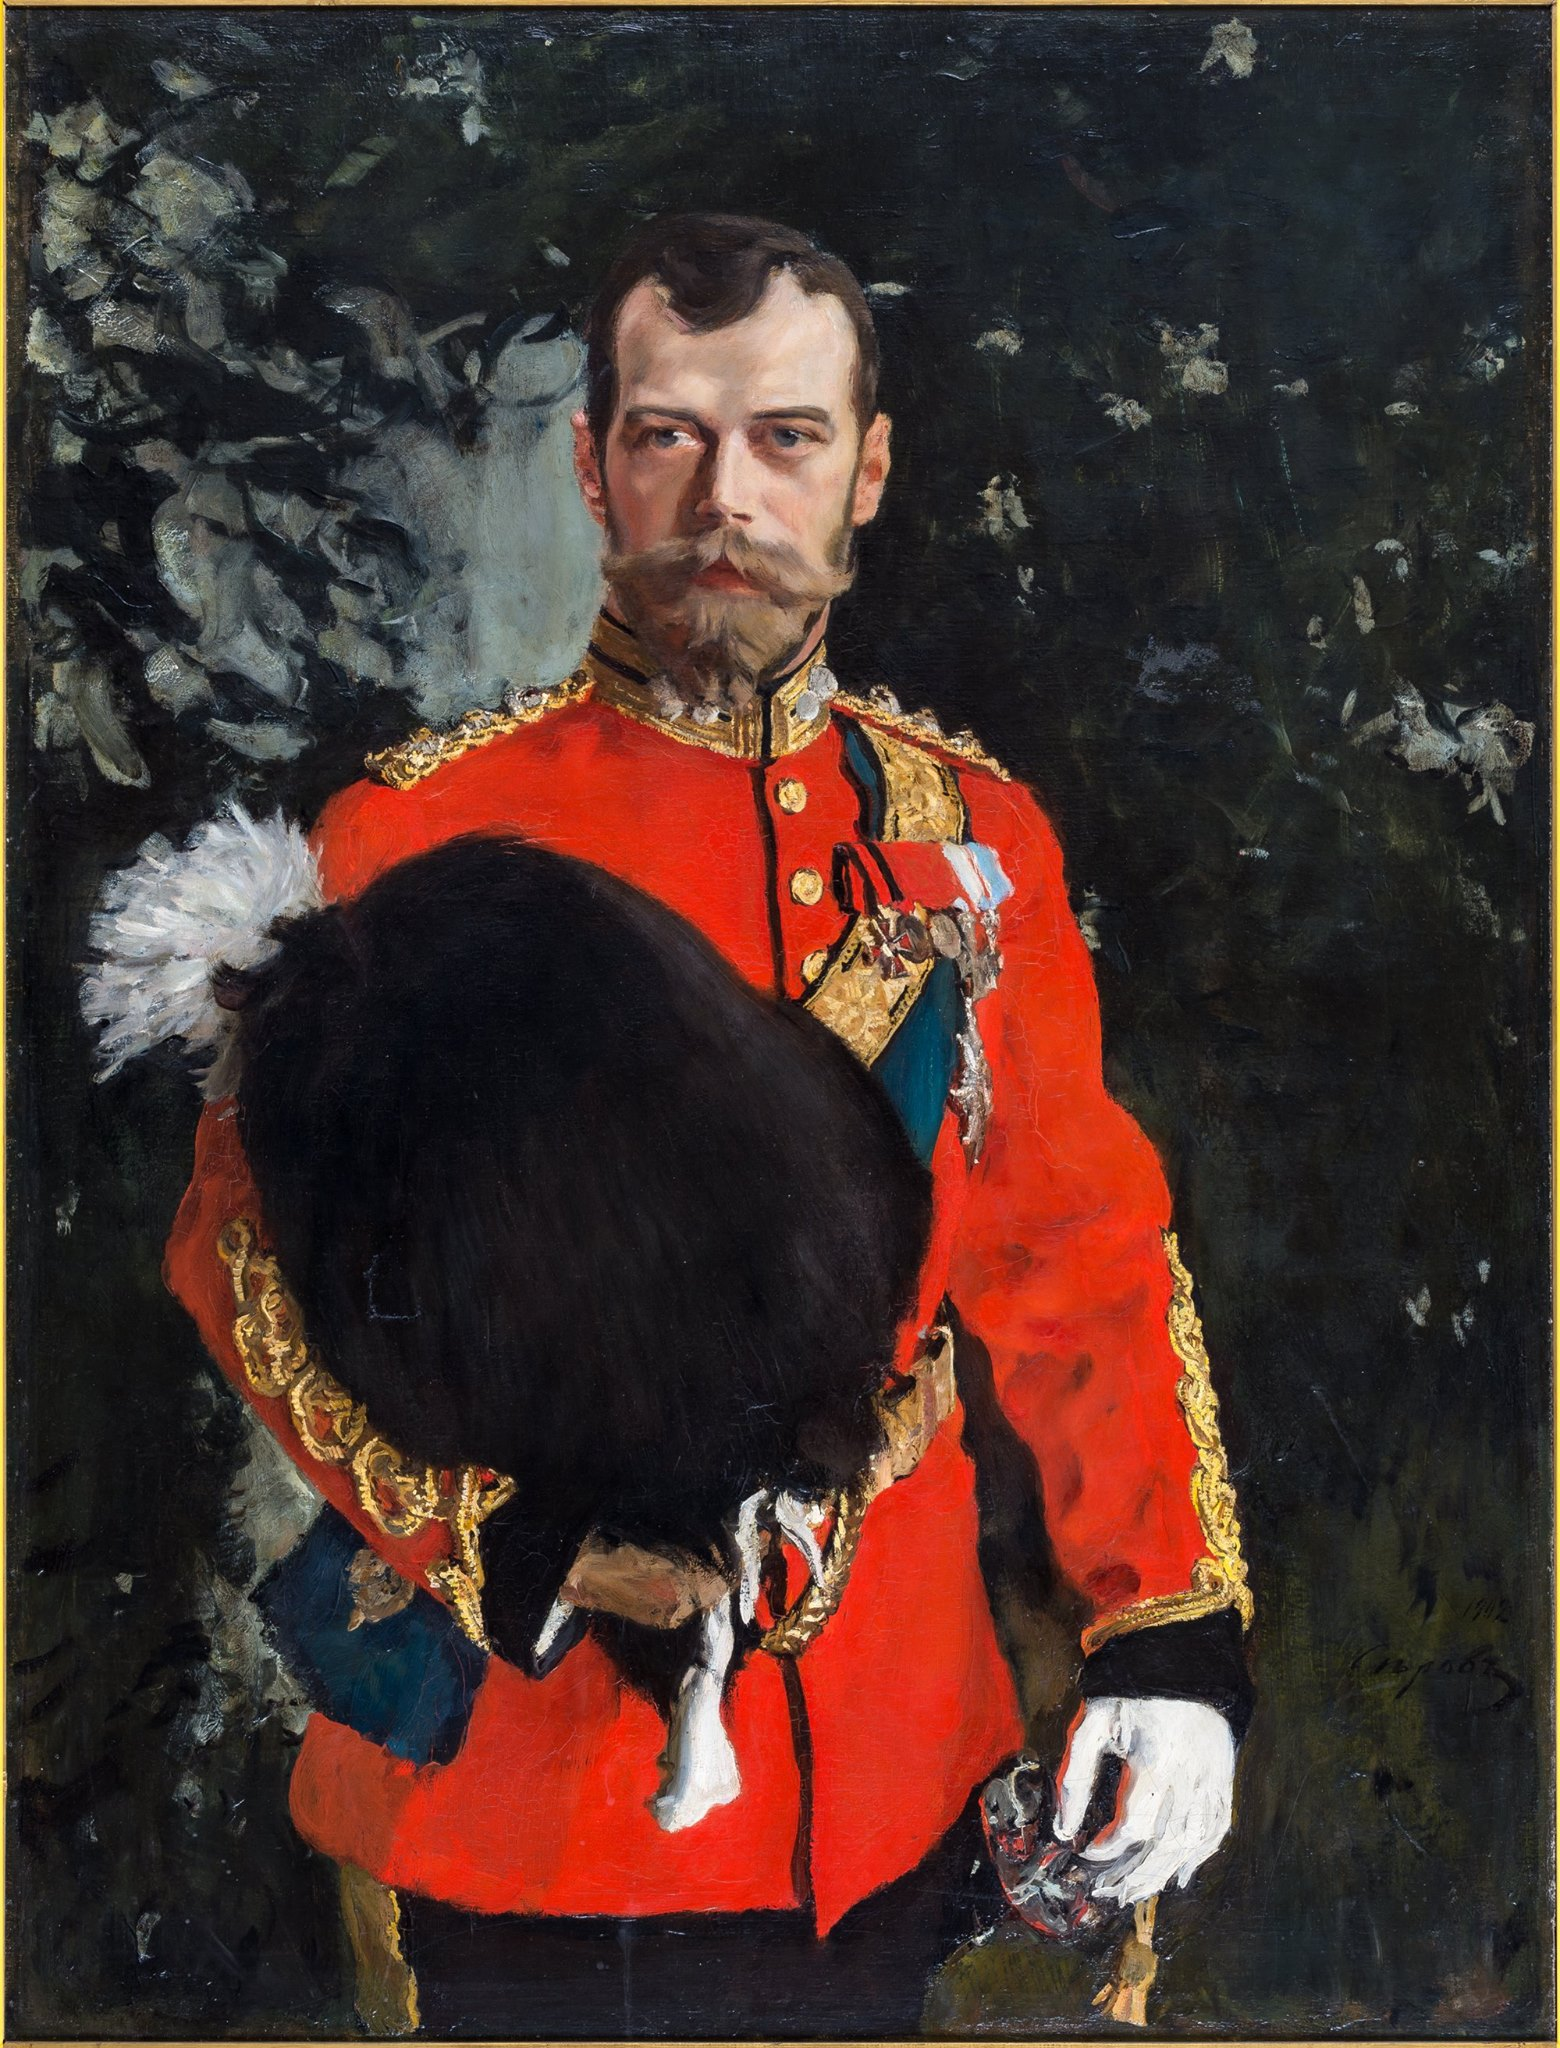 The famous Russian painter Valentin Serov portrayed the Russian tsar wearing his red Royal Scots Greys Colonel-in-Chief uniform. The portrait is now displayed as one of the highlights of the regiment's museum in Edinburgh. To this day Tsar Nicholas II is commemorated by the Royal Scots Dragoon Guards (which the Royal Scots Greys became in 1971), by the playing of the Russian Imperial anthem at certain mess functions. https://www.scotsdgmuseum.com/treasures/ // Valentin Serov. His Imperial Majesty Tsar Nicholas II of Russia, as Colonel-in-Chief, 2nd Dragoons (The Royal Scots Greys). The painting is held in The Royal Scots Dragoon Guards Regimental Museum.